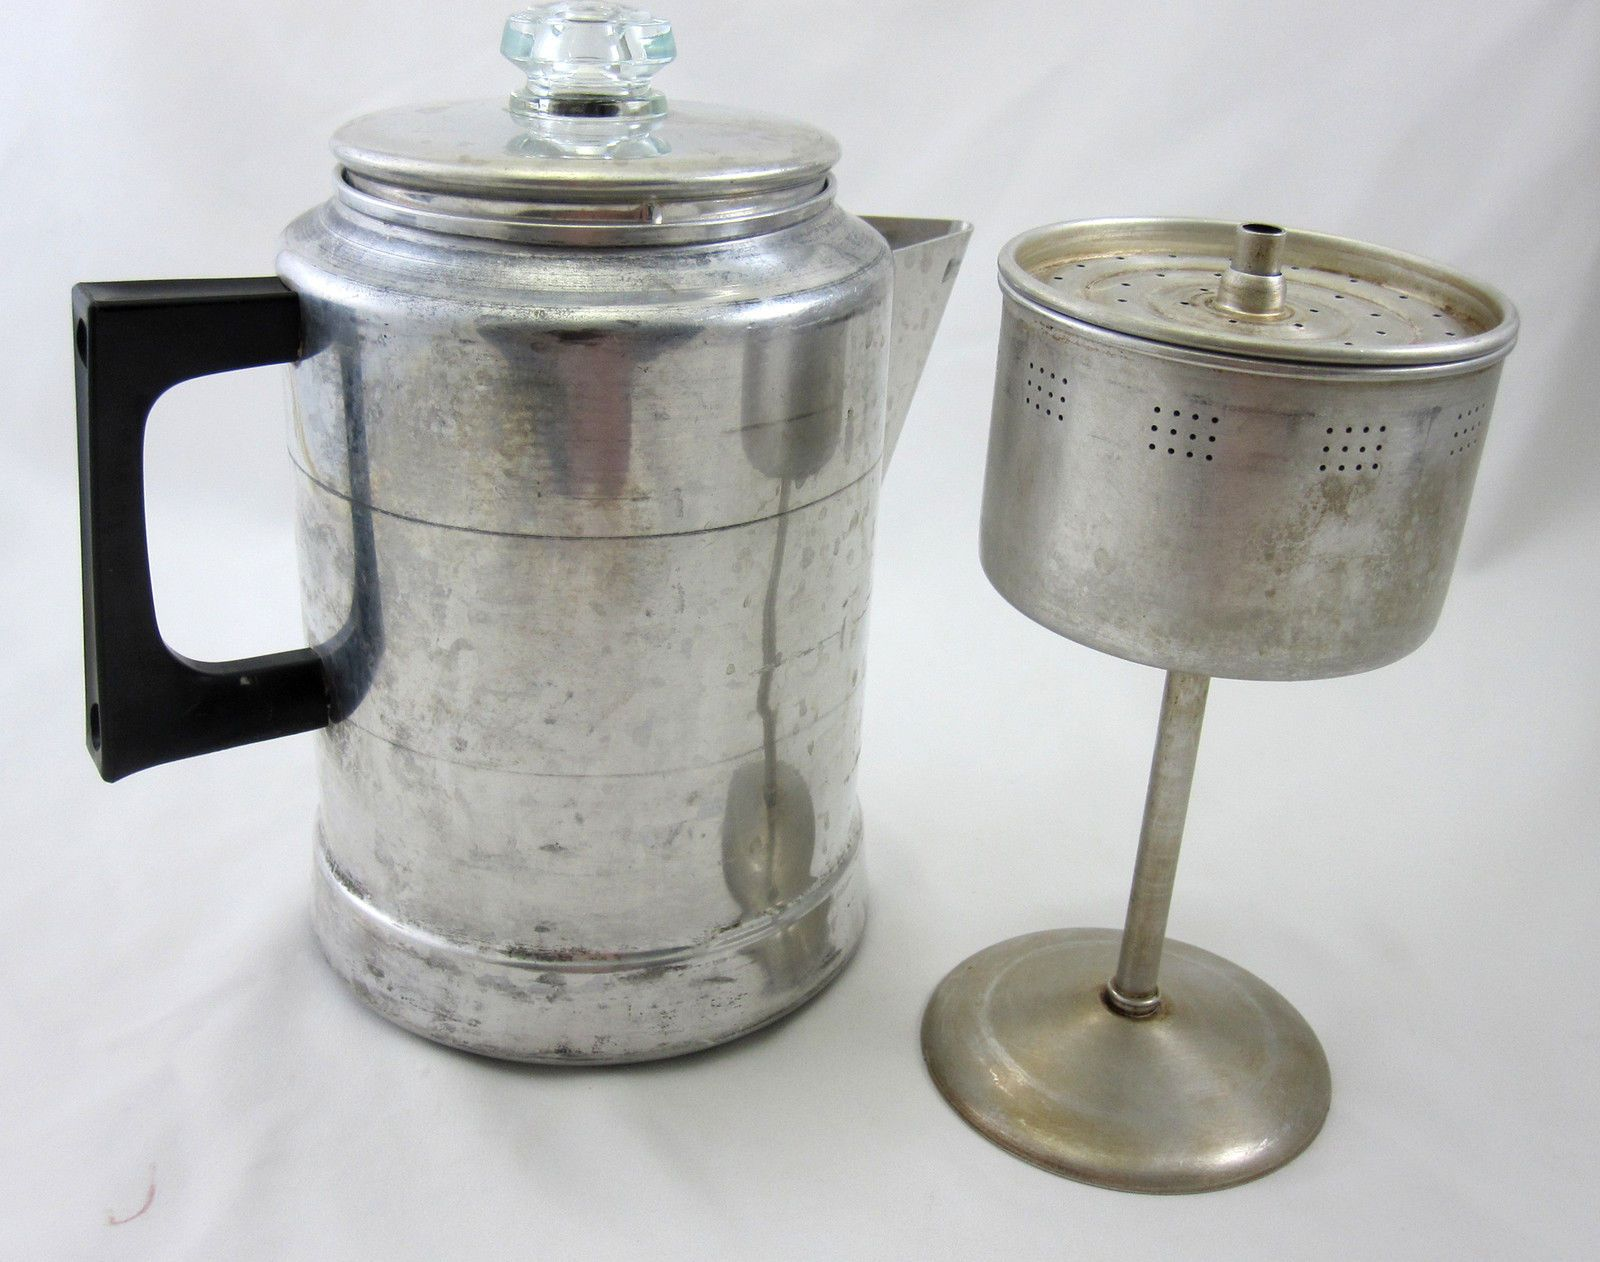 Comet Aluminum Coffee Pot 9 Cup Vintage Stovetop Percolator Made In Usa Campfire